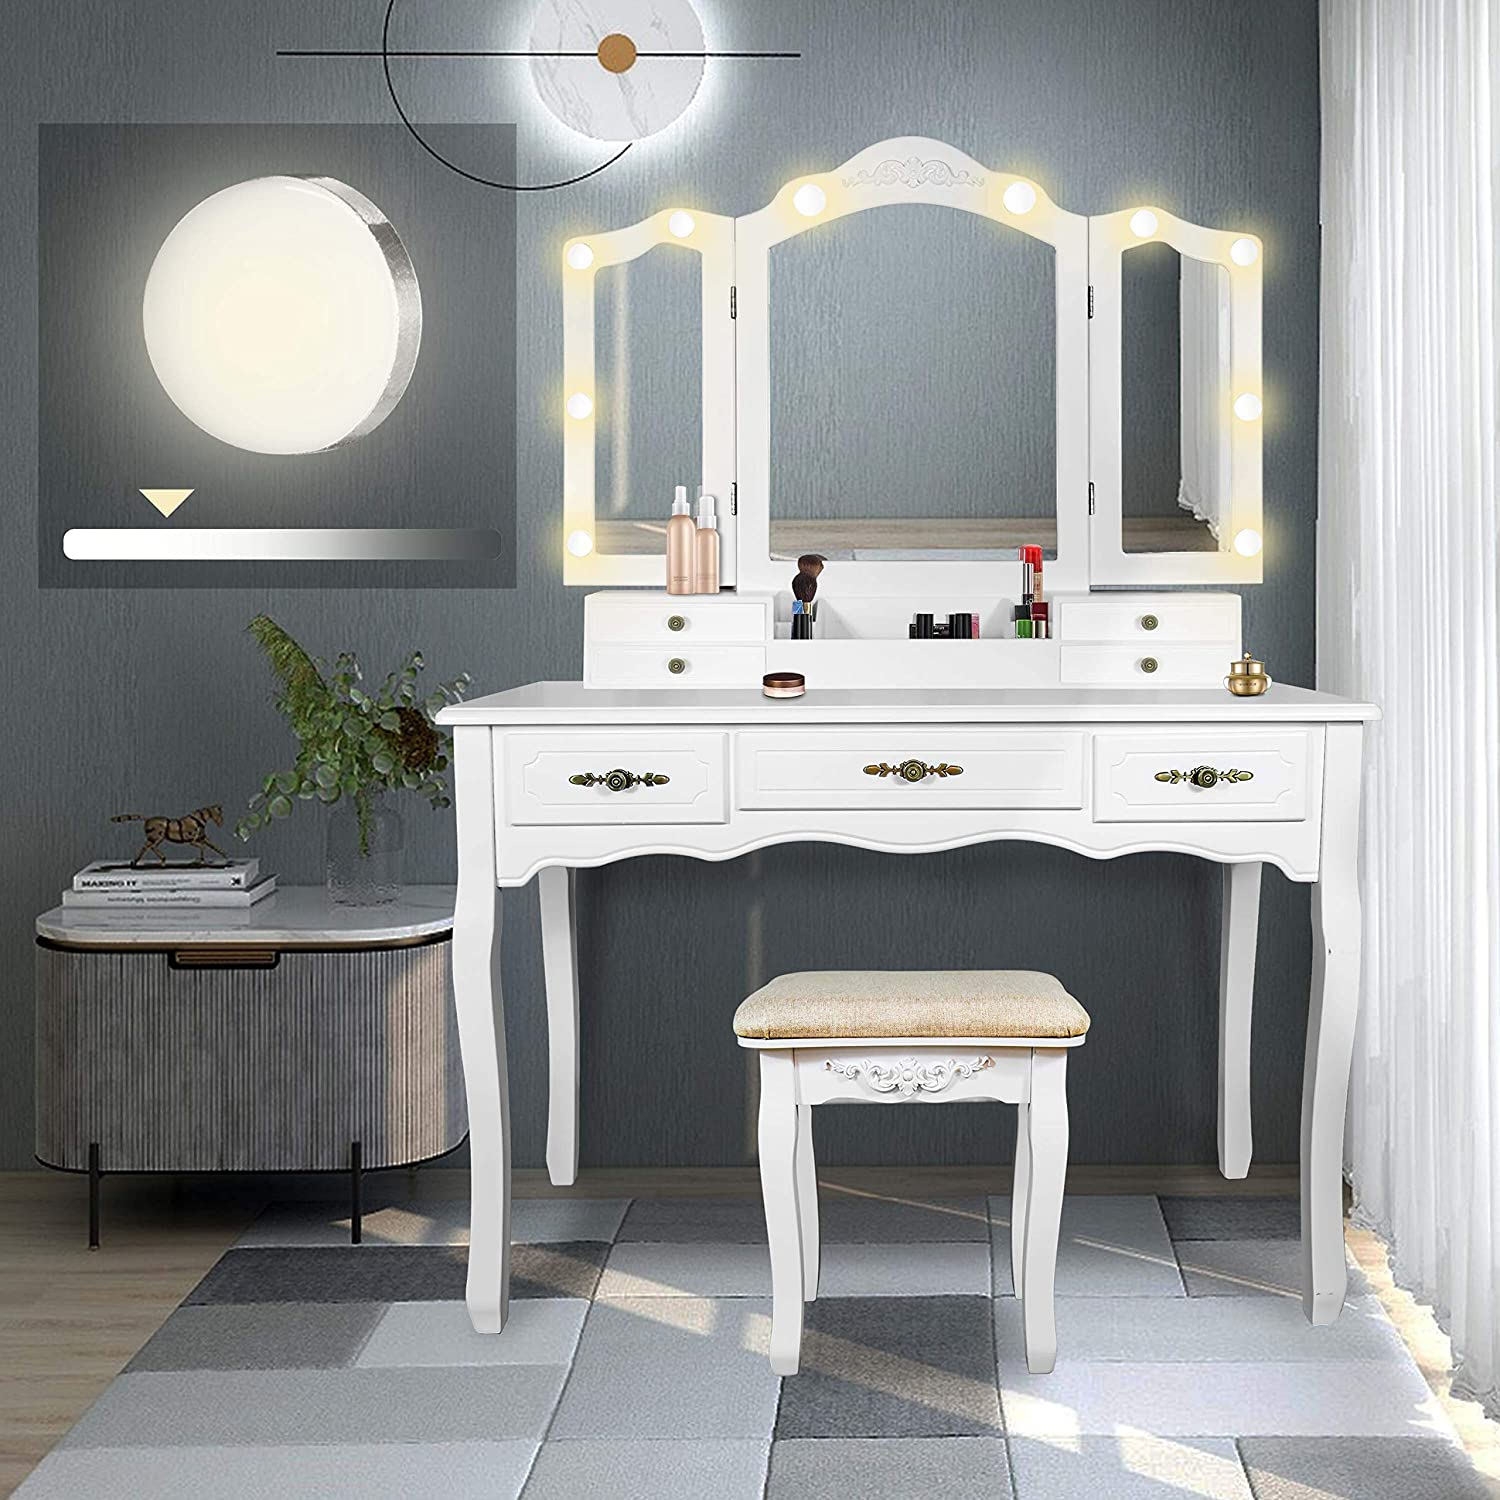 ENSTVER Vanity Set with 10 Hollywood LED Light Bulbs,Makeup Table with Stool and Mirror,6 Organization 7 Drawers,Dressing Table for Bedroom,Pure White